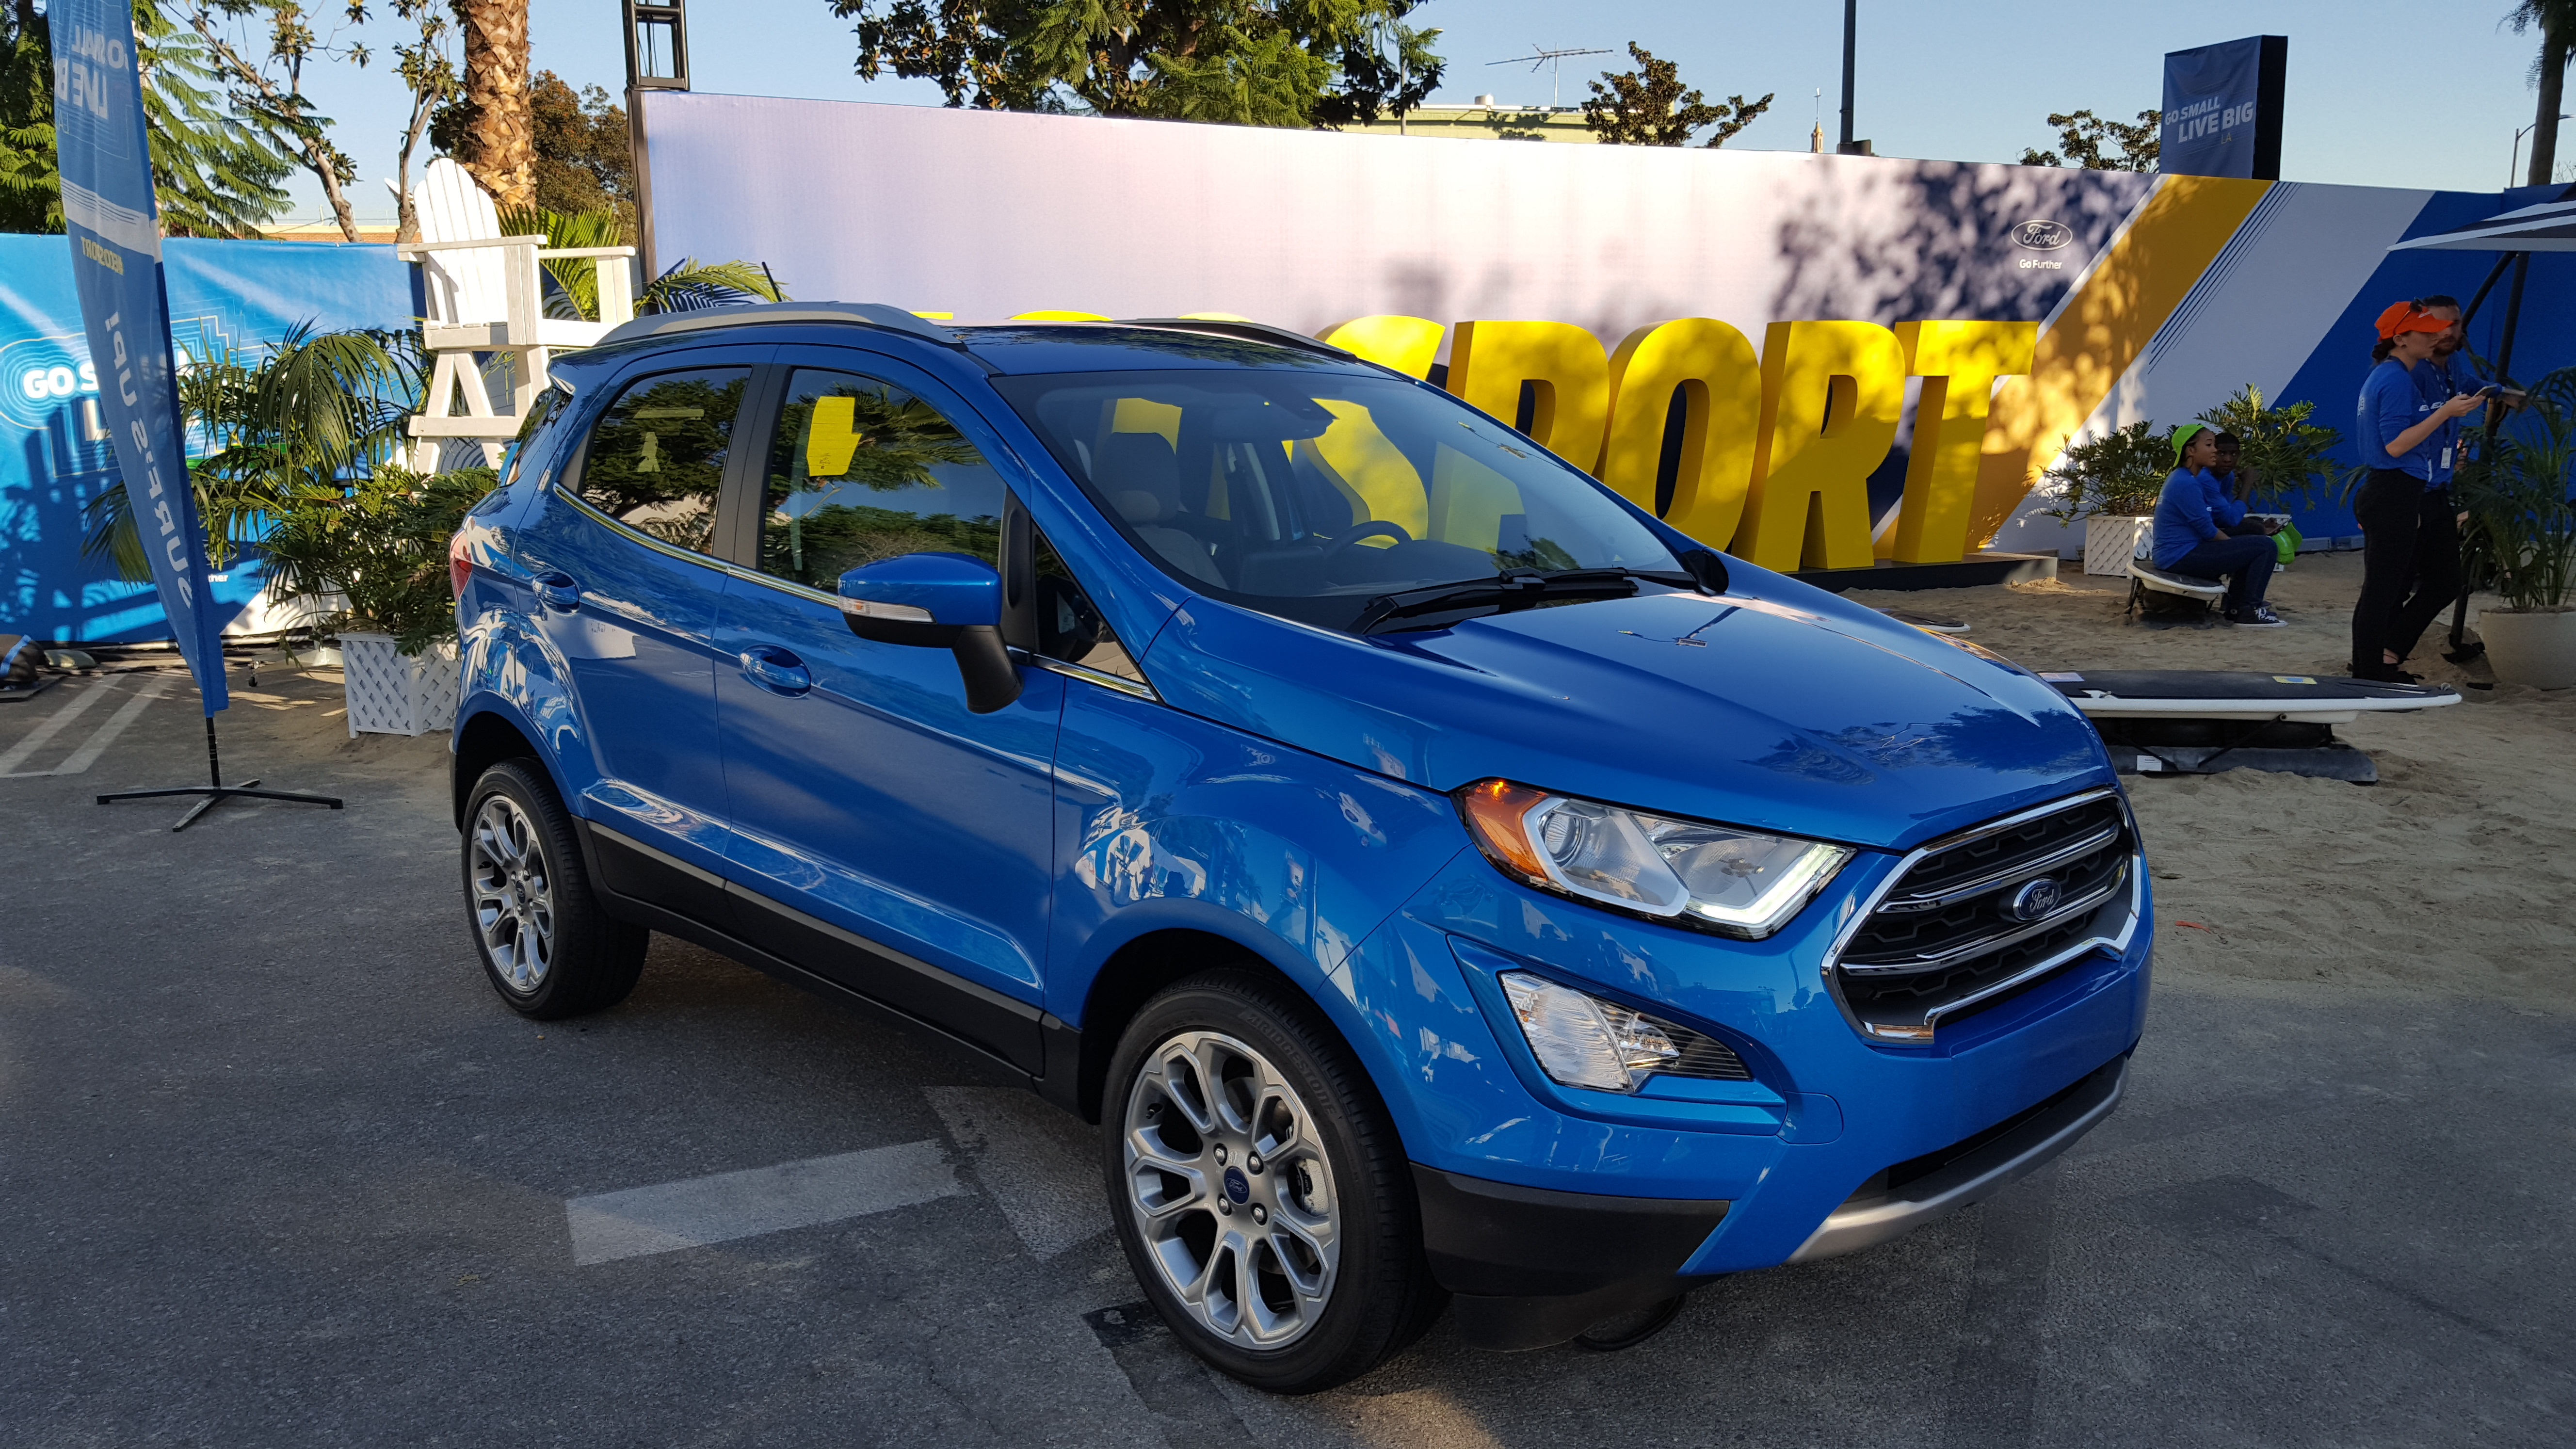 """The Ford EcoSport in the """"Titanium"""" trim at the Go Small, Live Big pop-up event in Hollywood."""